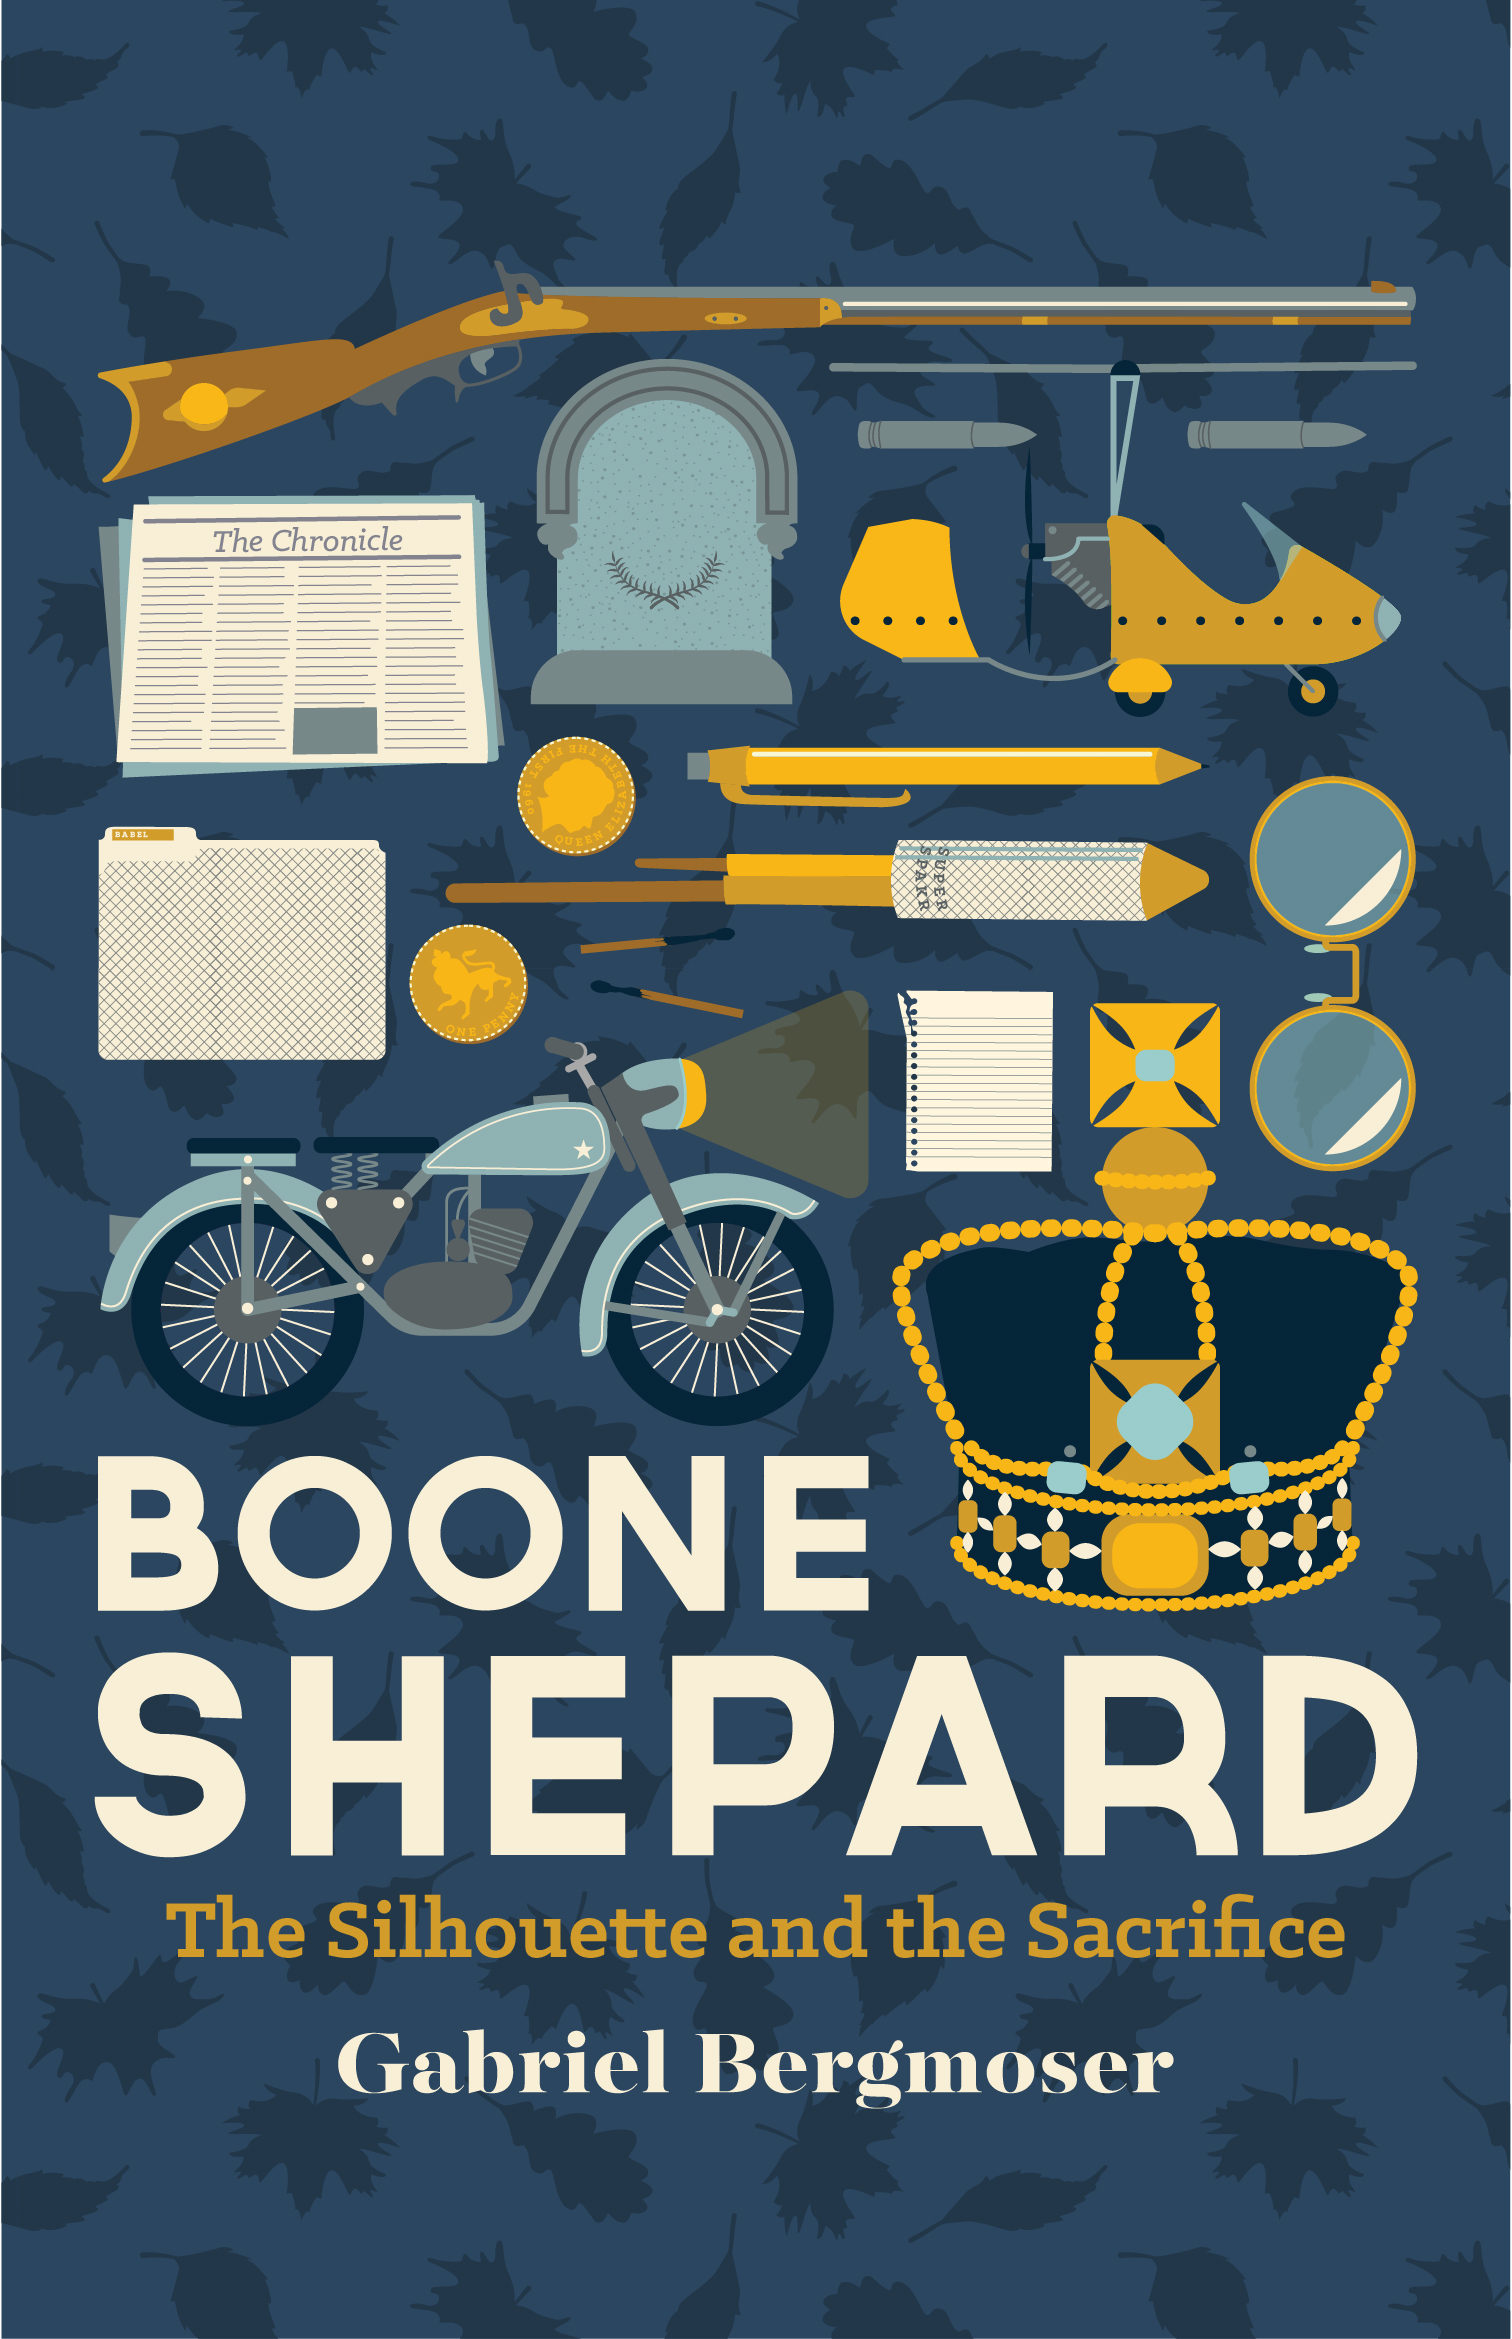 Boone Shepard: The Silhouette and the Sacrifice